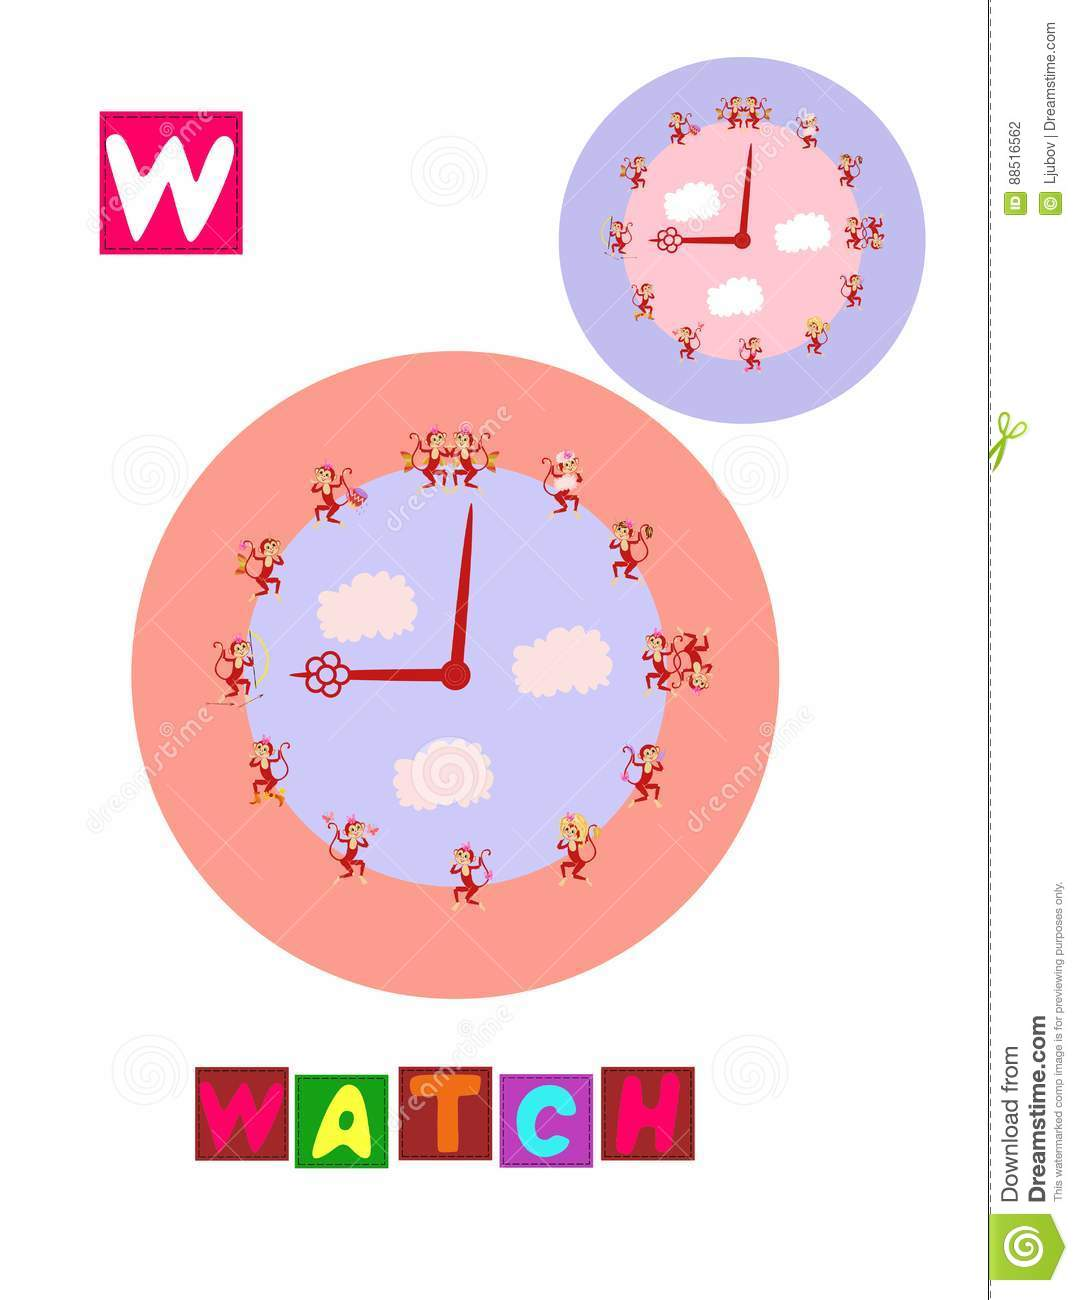 Letter W. Cute Cartoon English Alphabet With Colorful Image And Word ...